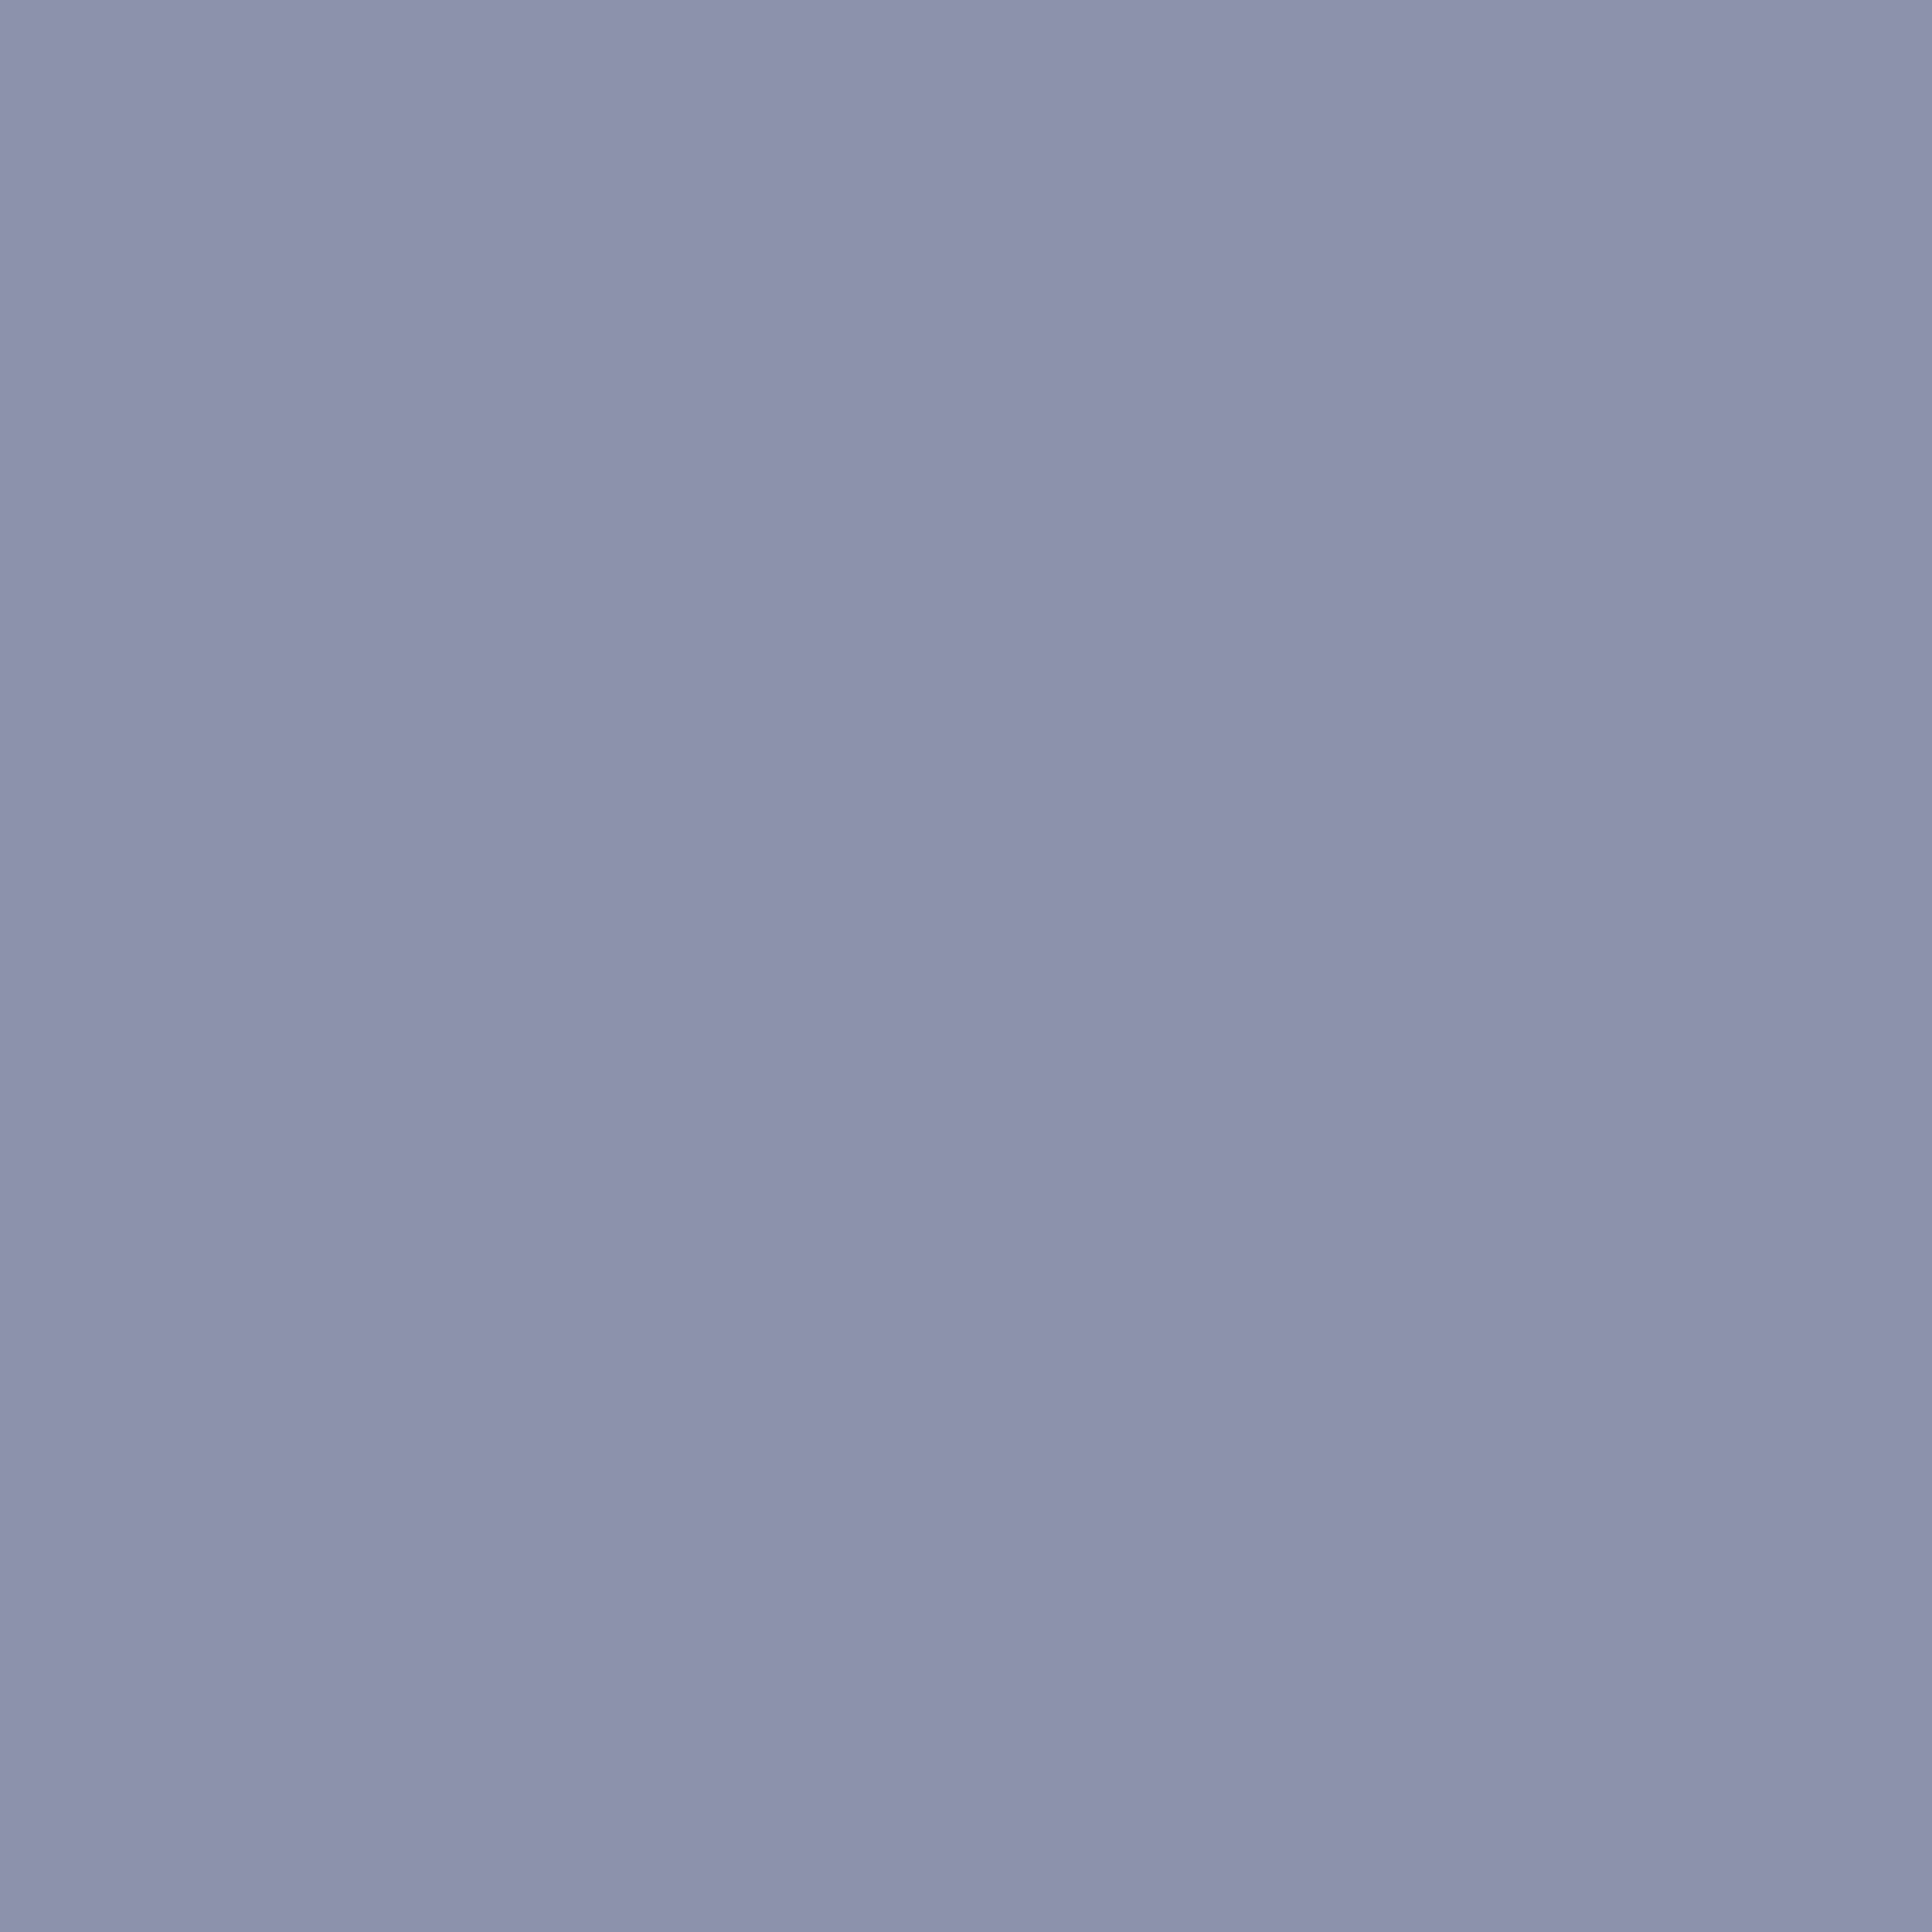 2048x2048 Gray-blue Solid Color Background